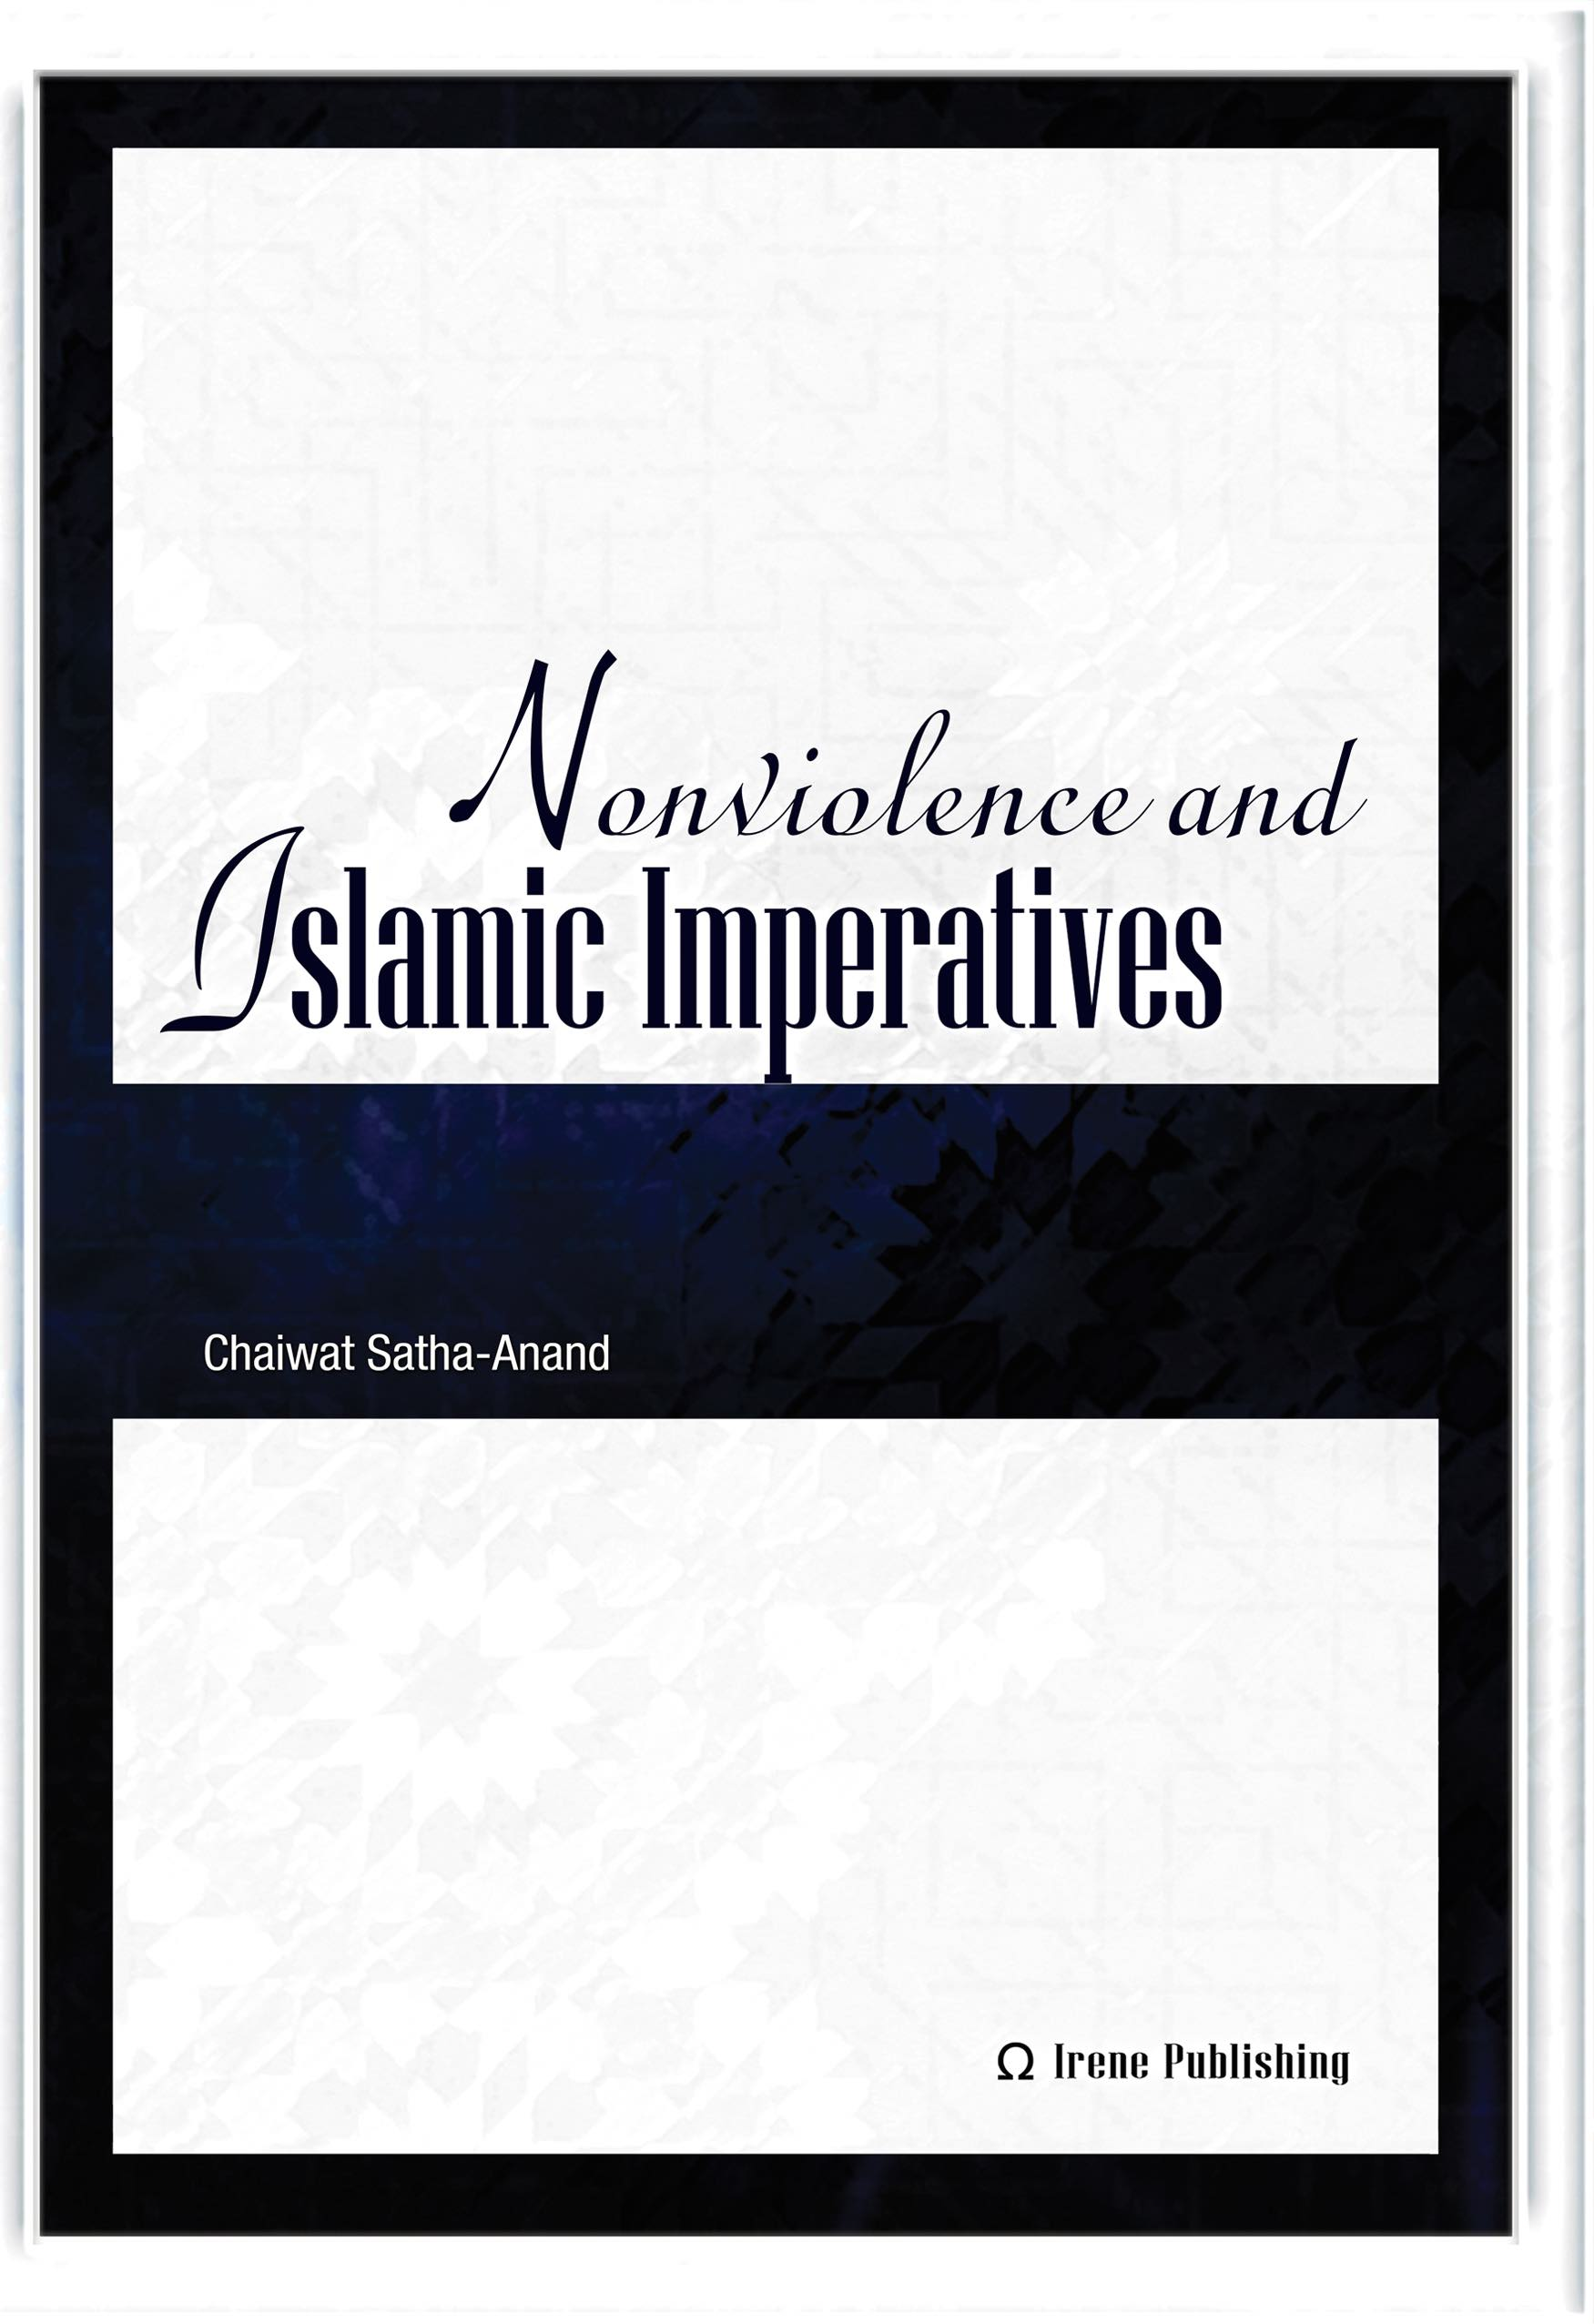 Nonviolence and Islamic Imperatives